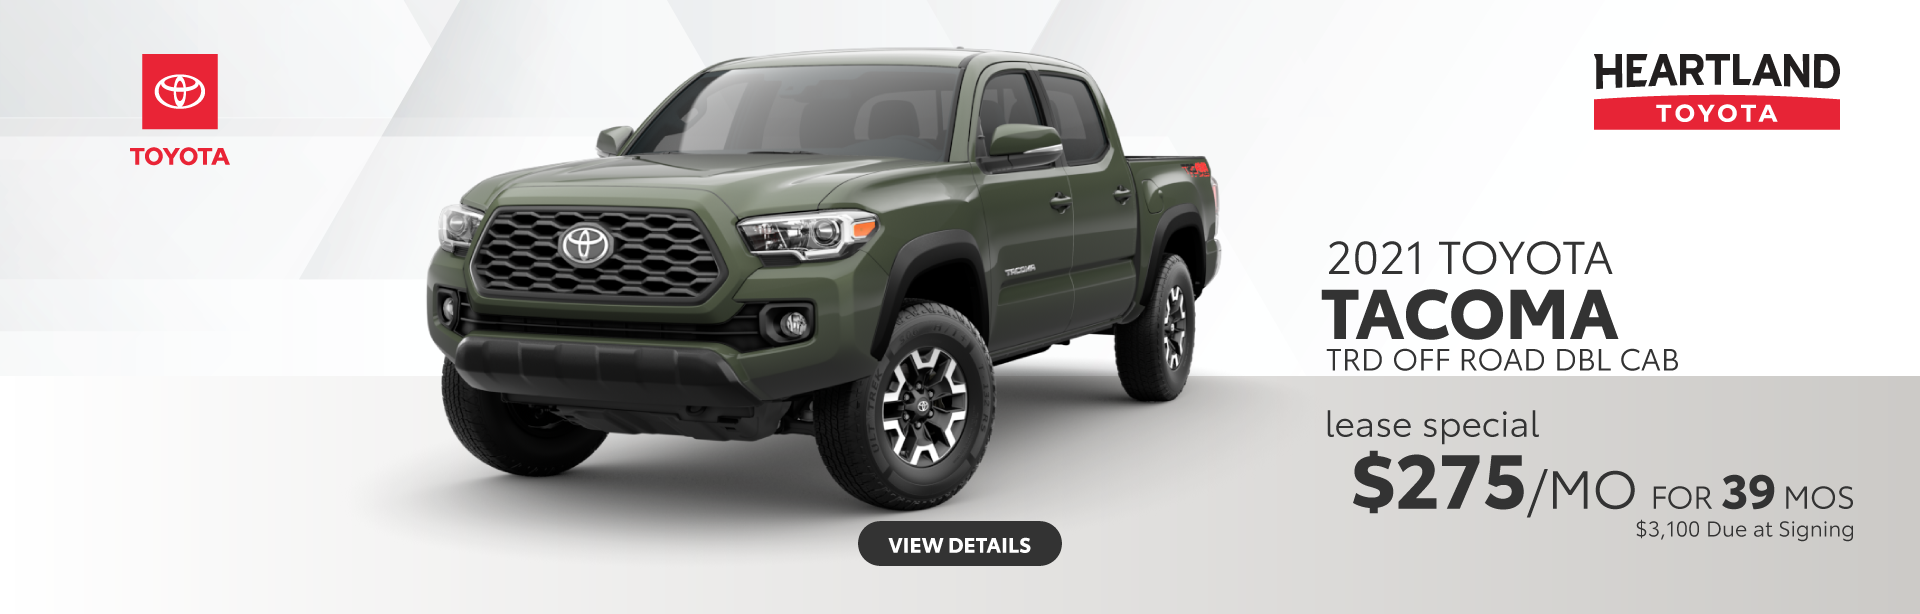 2021 Toyota Tacoma TRD OFF Road Double Cab $279/mo for 39 mos $3,100 due at signing